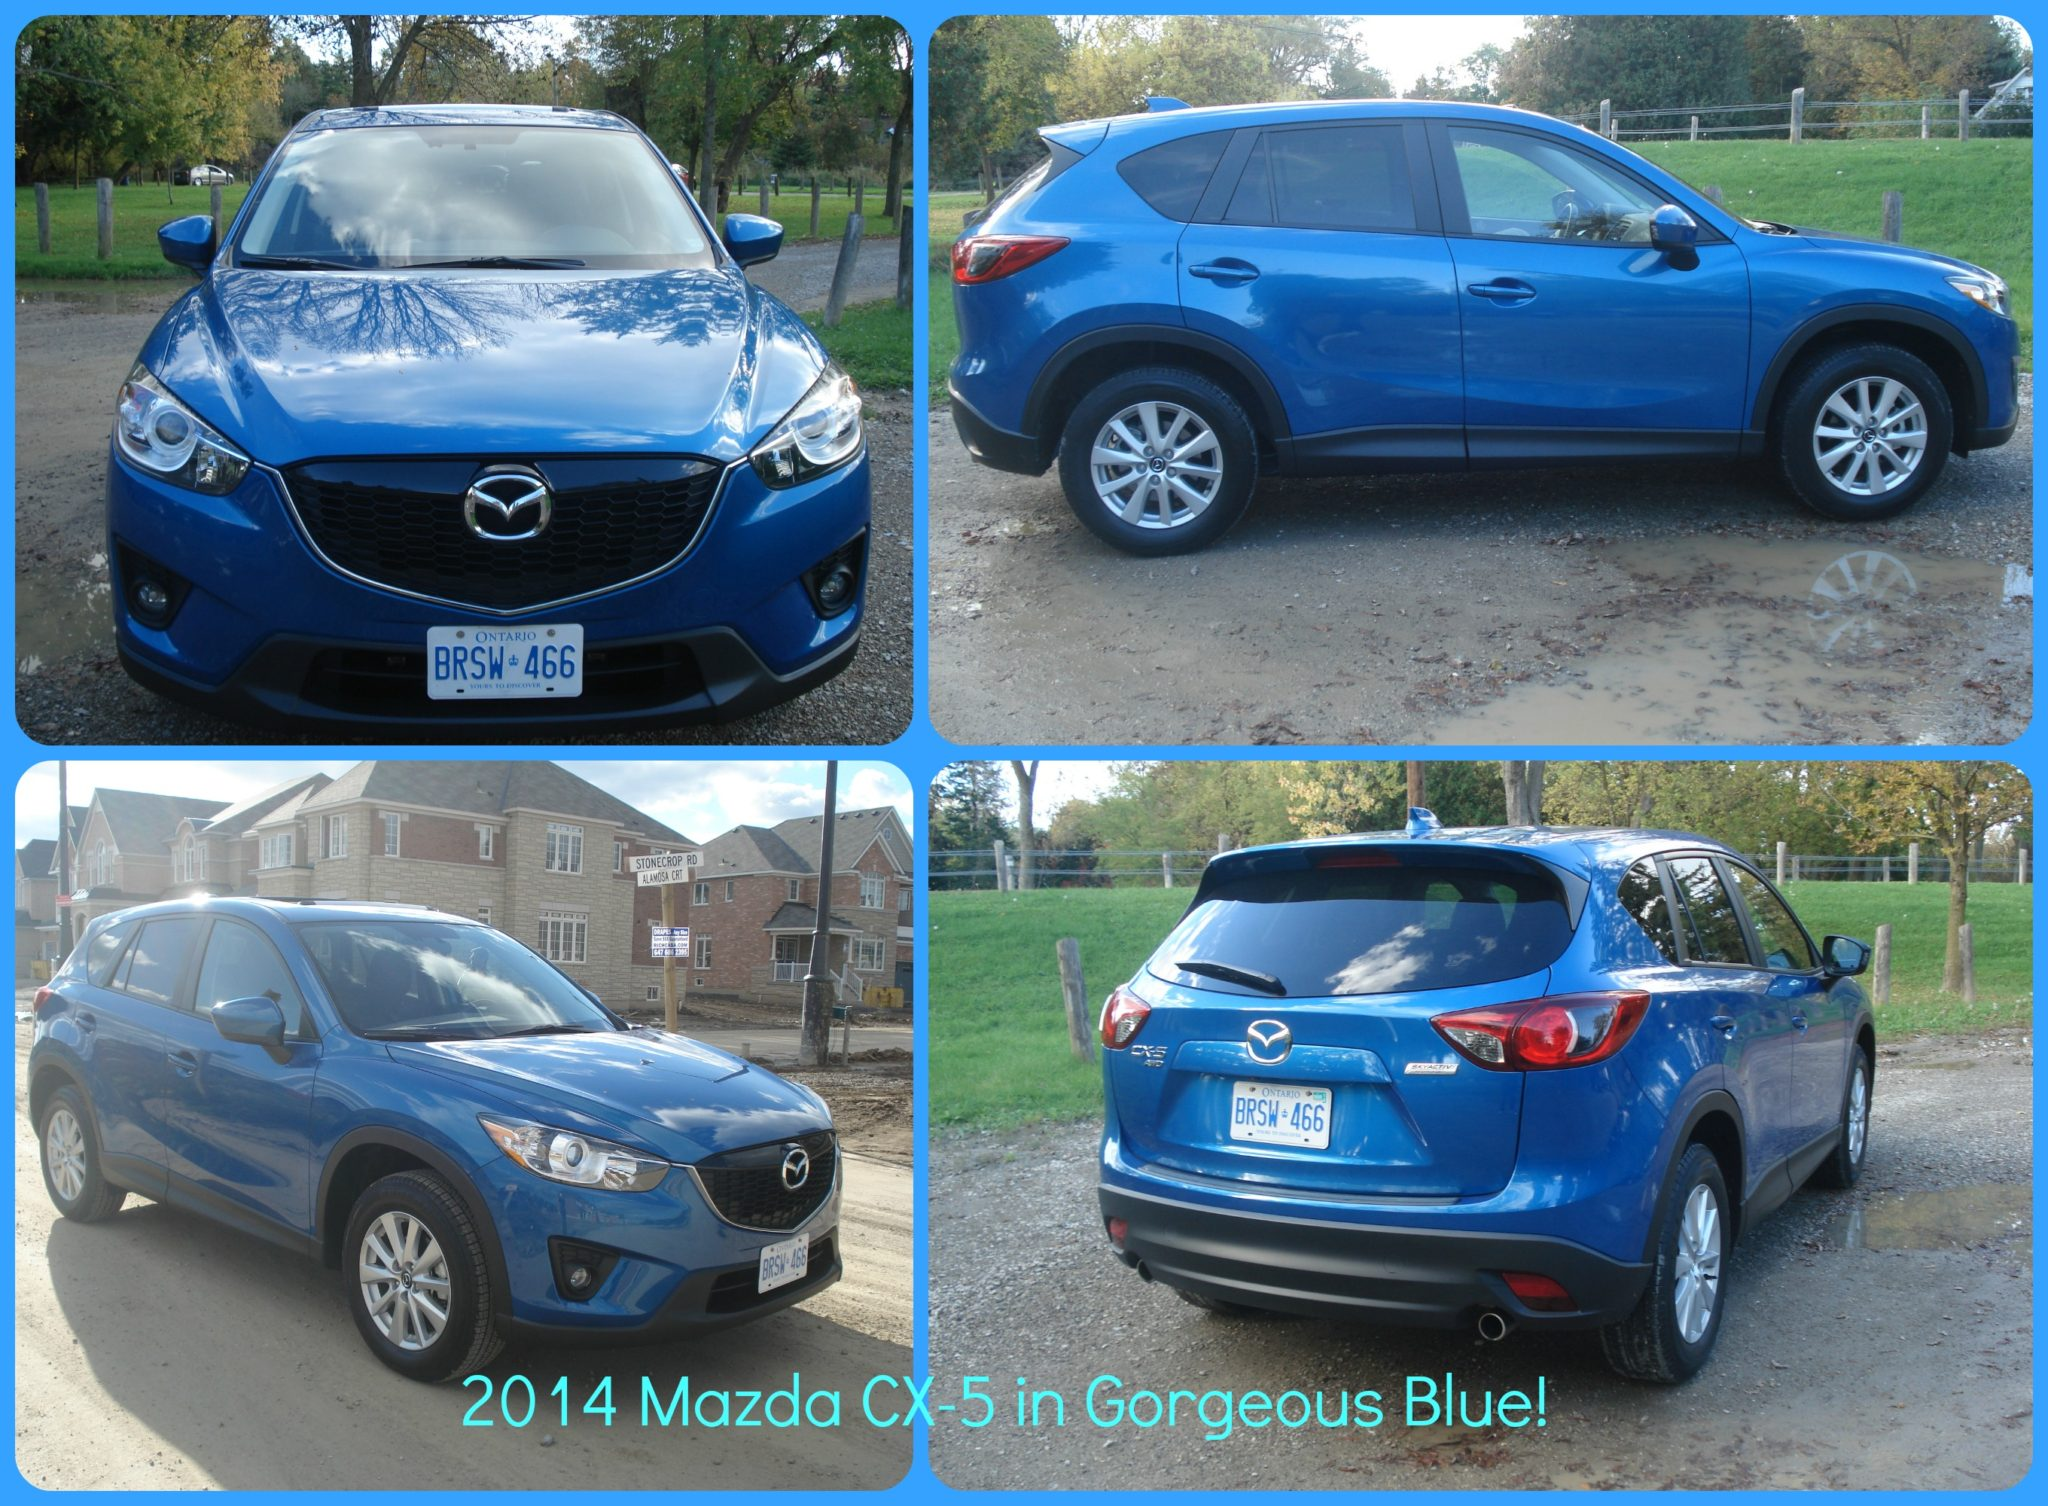 2014 Mazda CX-5 Review